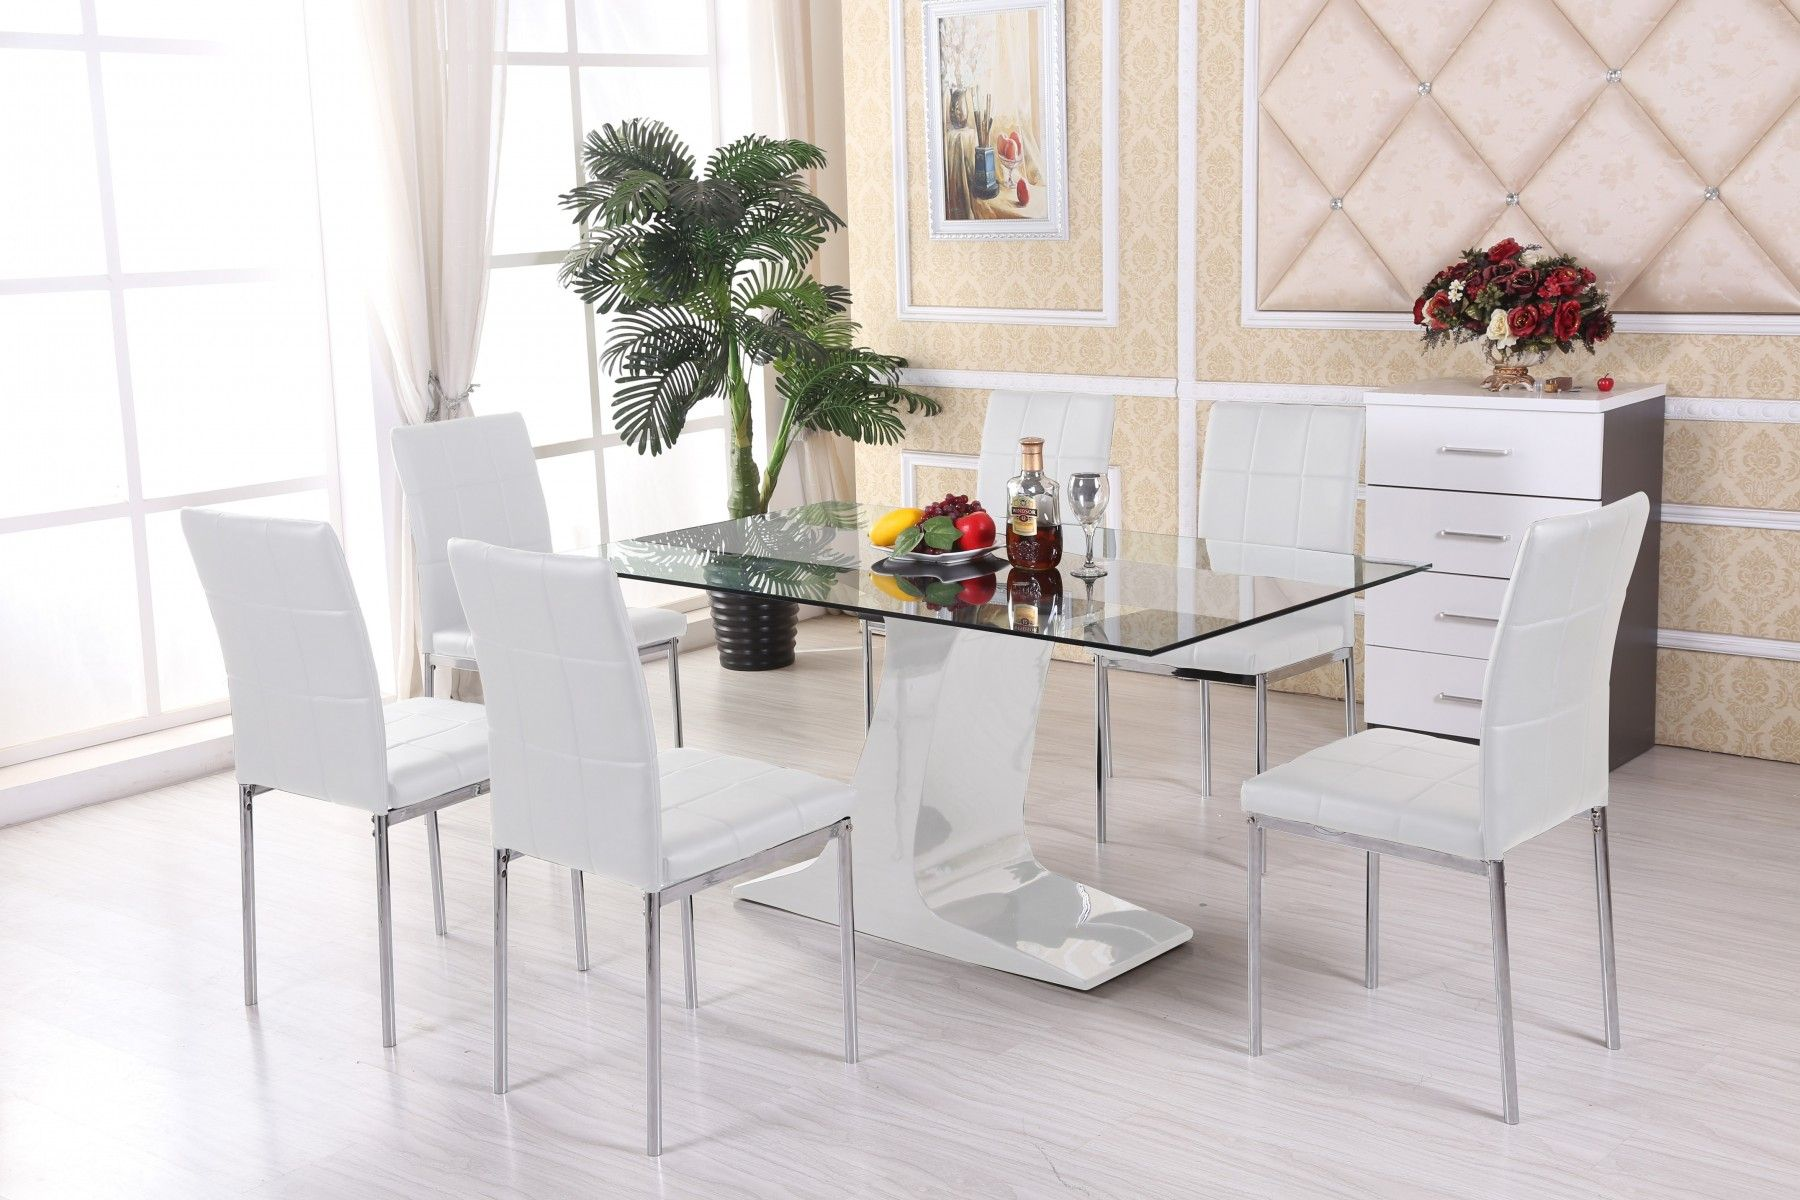 Modern Glass Dining Table Modern Glass Kitchen Table  Modern New White Dining Room Table And 6 Chairs Review